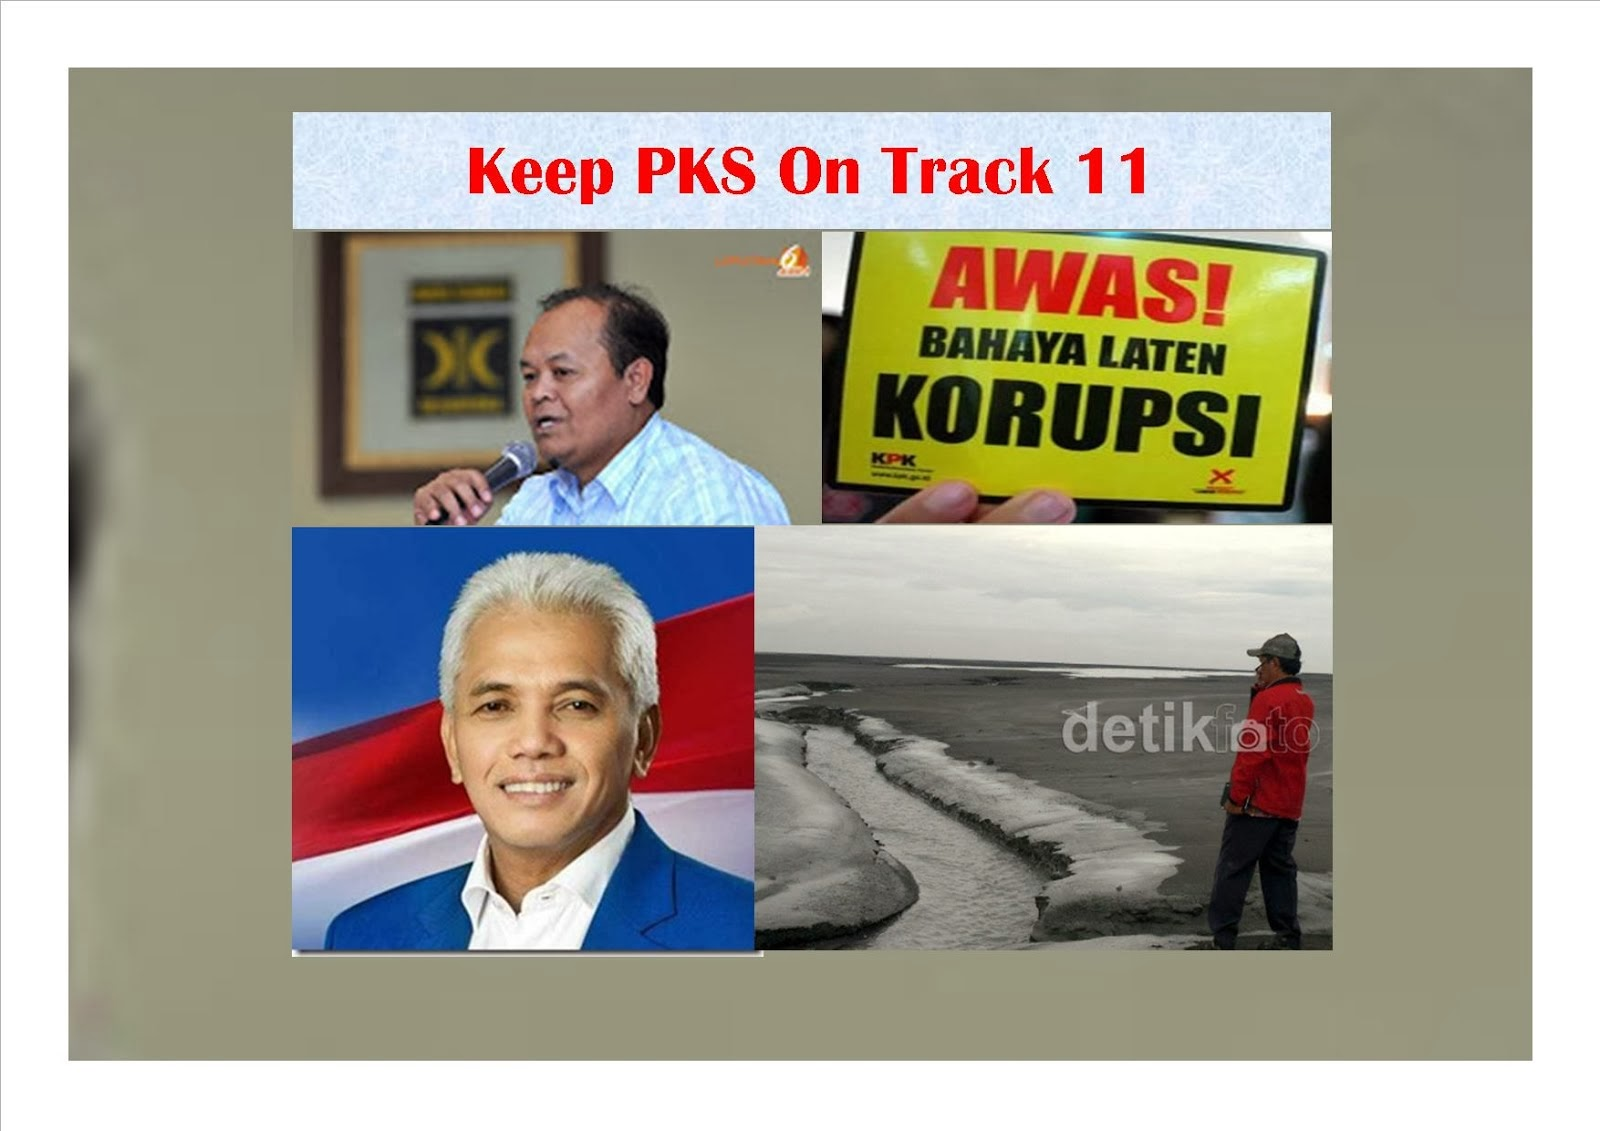 Keep PKS On Track 11